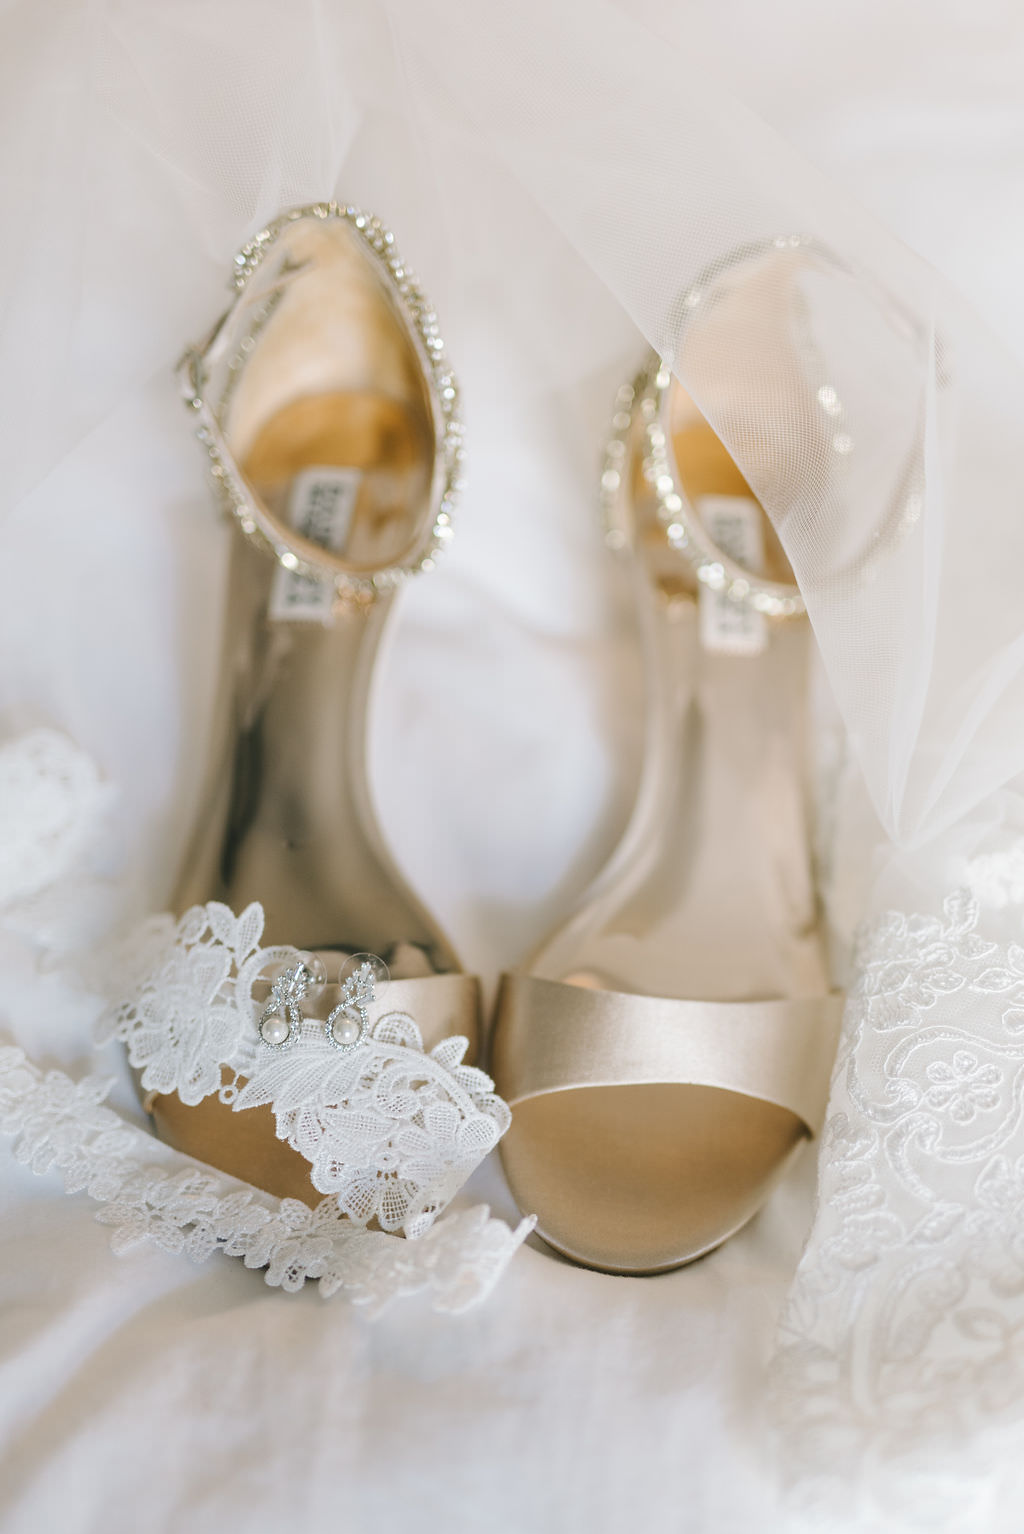 Gold and Sequin Strappy Sandal Wedding Shoes   Photographer Kera Photography